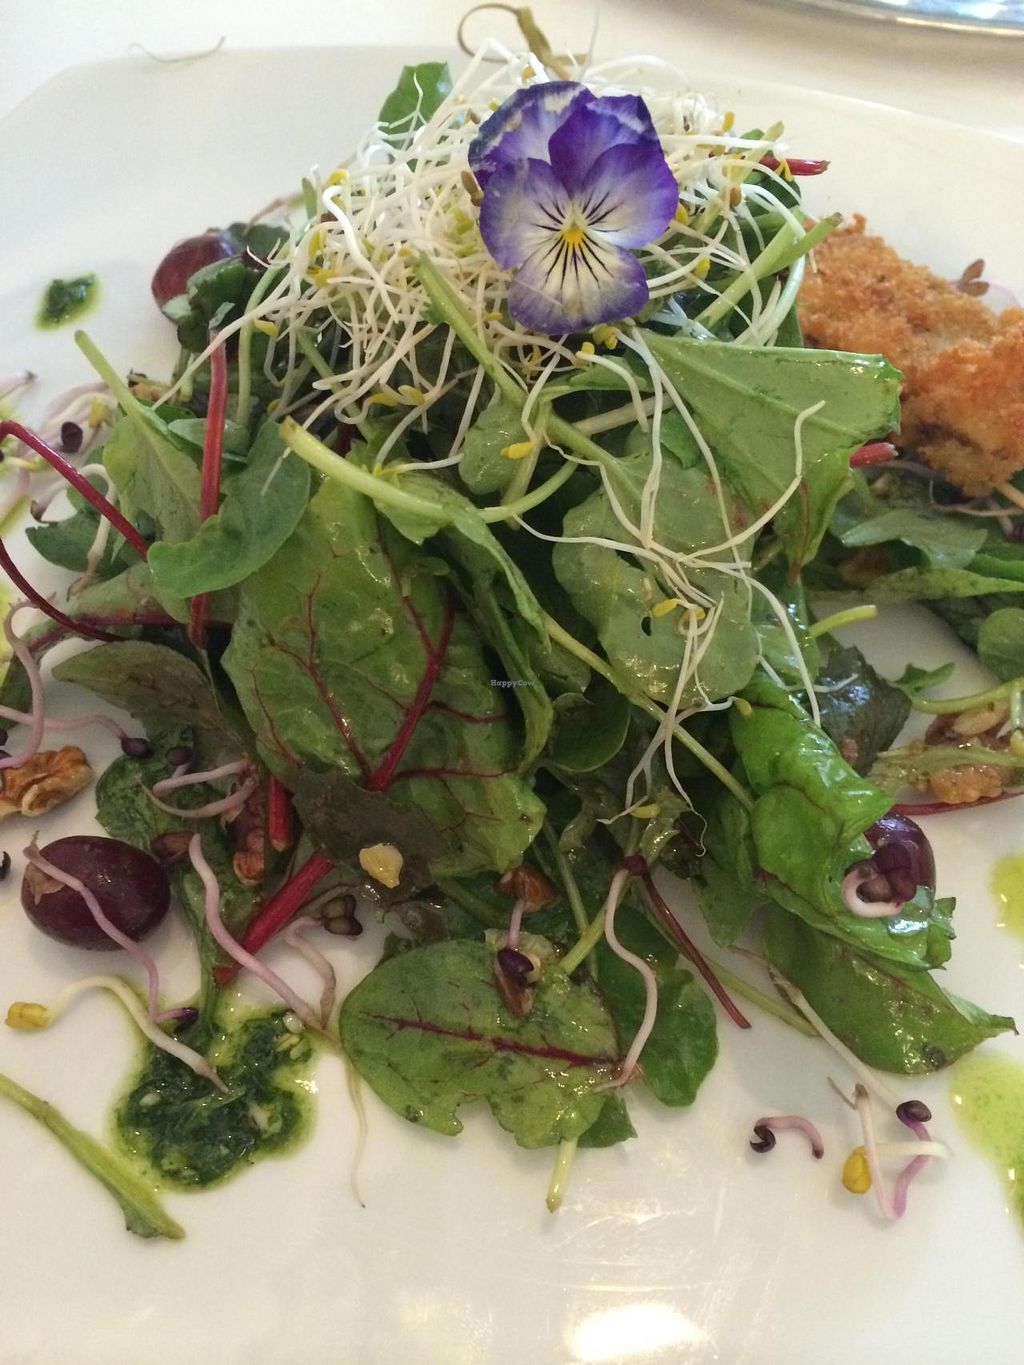 """Photo of The Green Garden  by <a href=""""/members/profile/JazzyCow"""">JazzyCow</a> <br/>One of the most gorgeous salads I've ever eaten! <br/> August 10, 2014  - <a href='/contact/abuse/image/45824/76612'>Report</a>"""